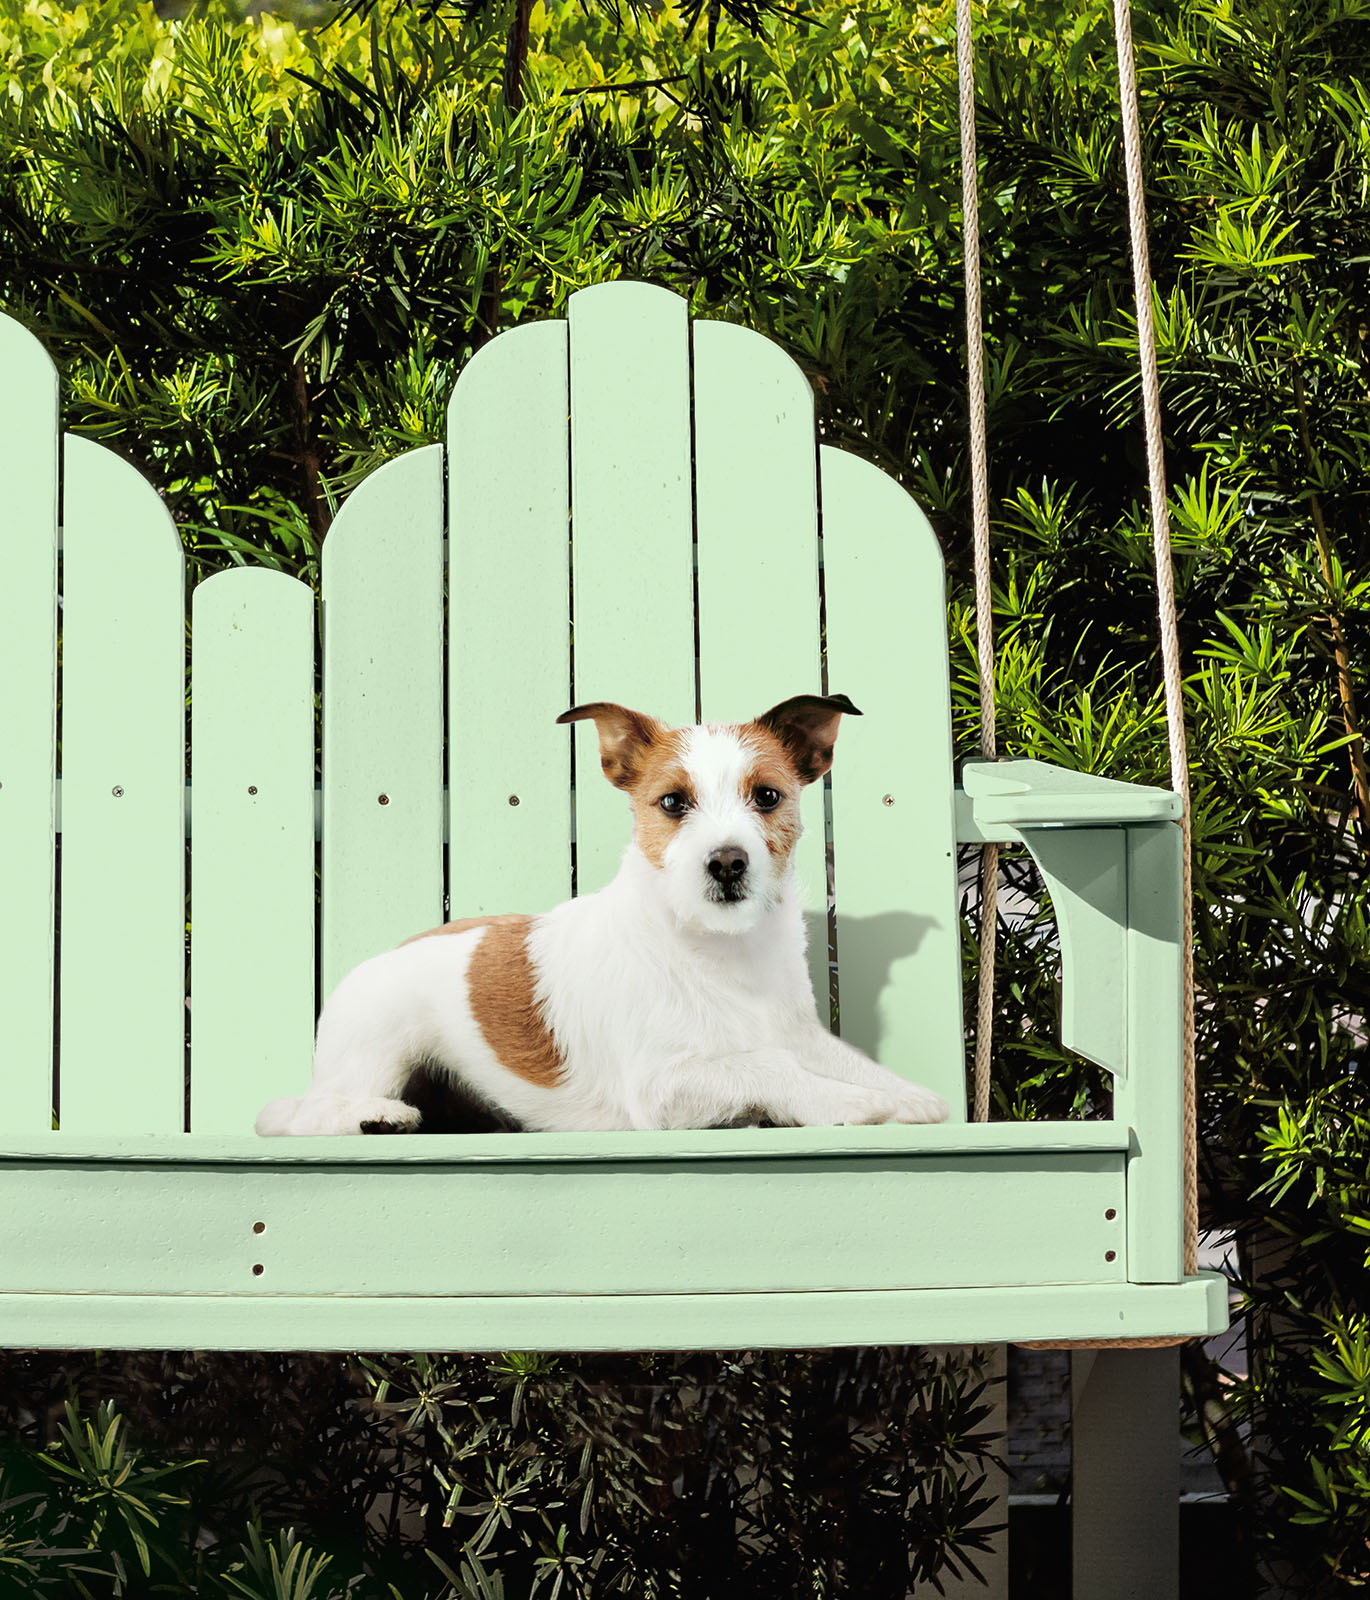 A dog sitting on a green painted outdoor large swing.